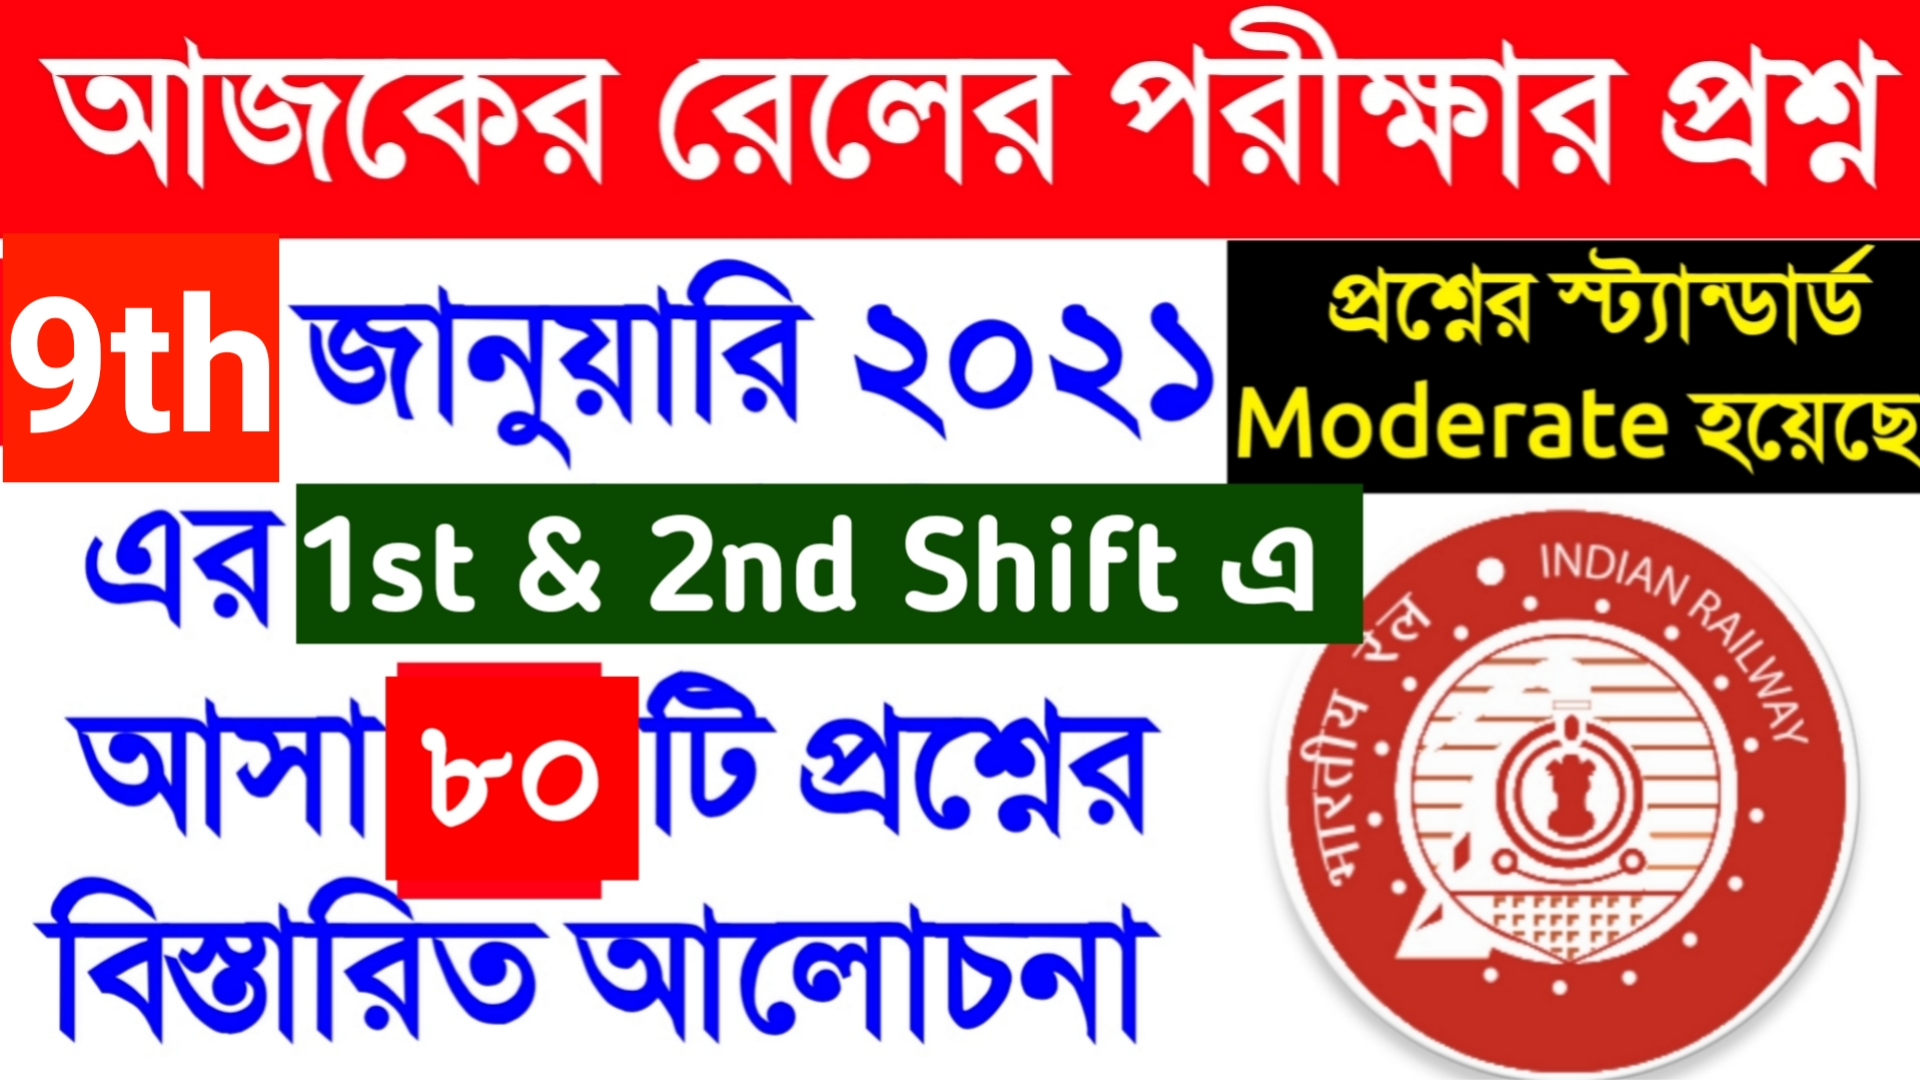 RRB NTPC 9TH JANUARY 2021 1ST & 2ND SHIFT QUESTION PAPER PDF IN BENGALI